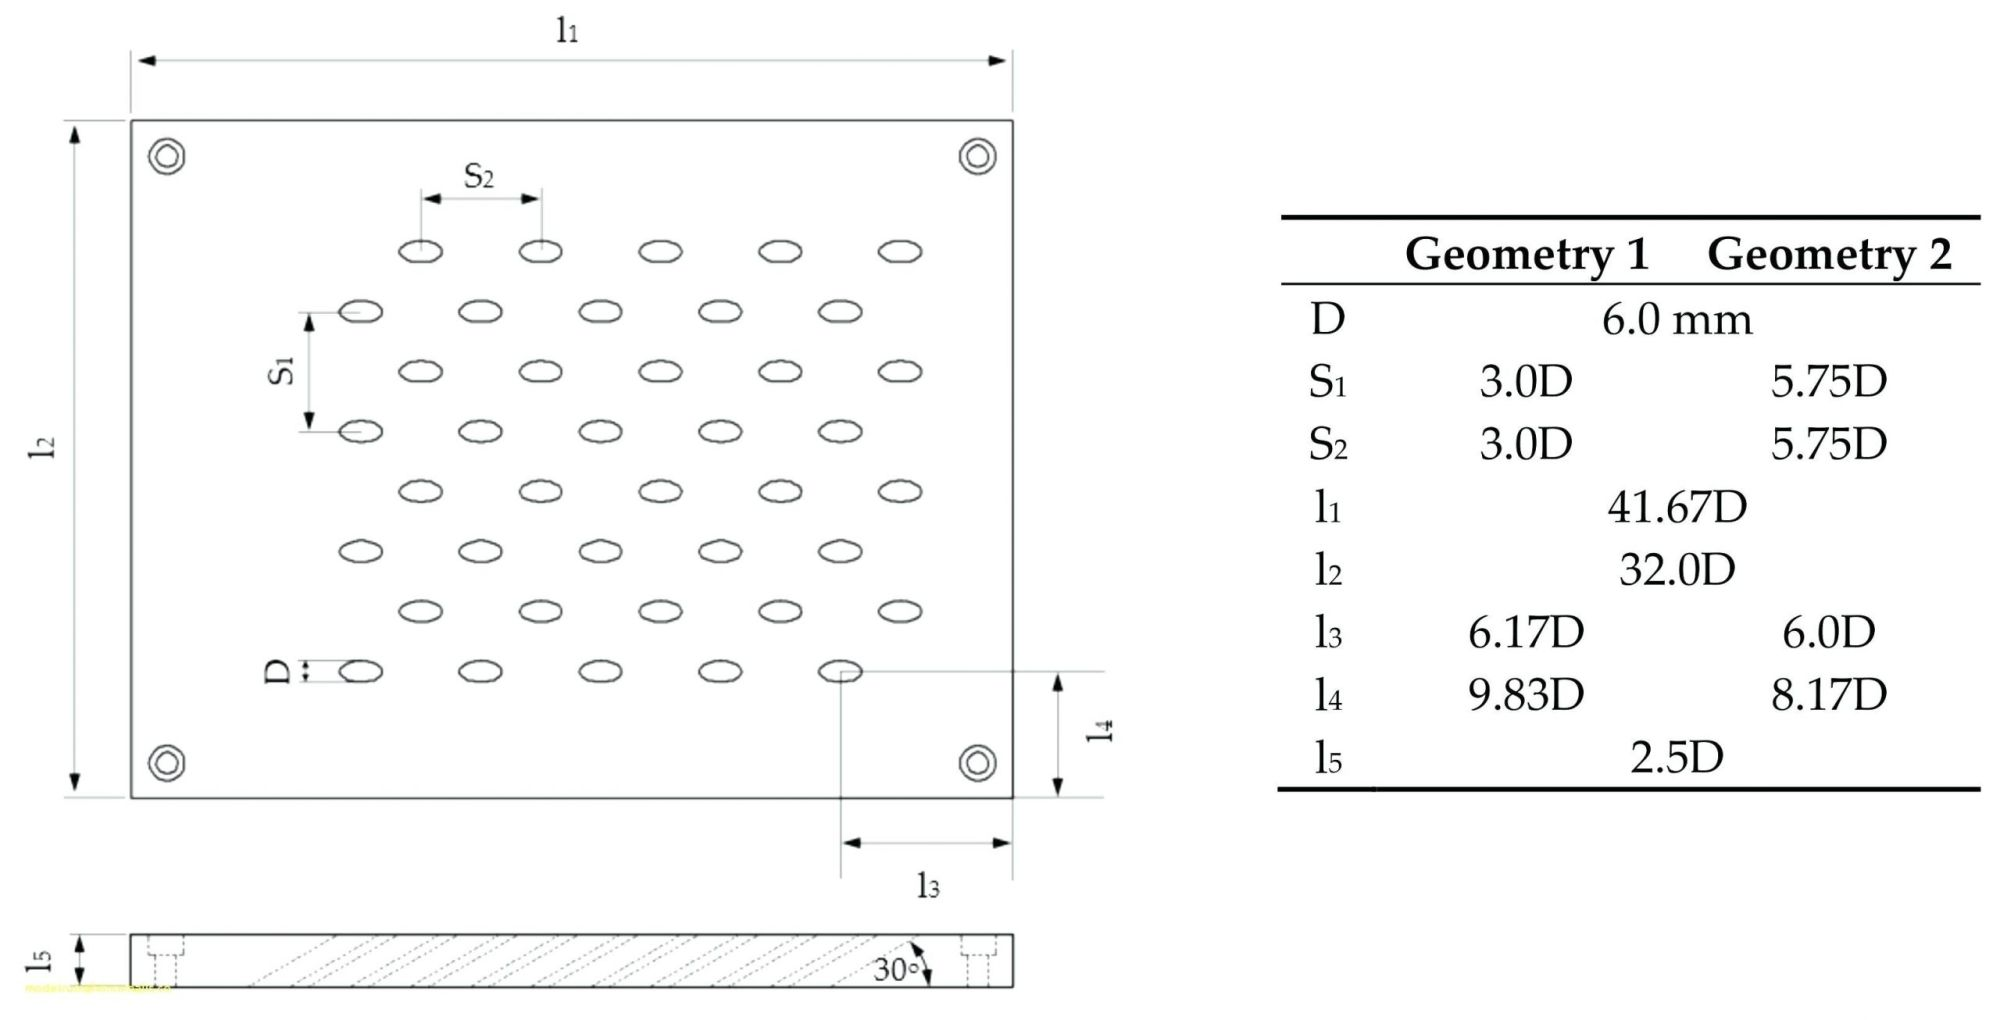 hight resolution of 5 Free Math Worksheets Fourth Grade 4 Addition Adding whole Tens 4 Addends  - apocalomegaproductions.com